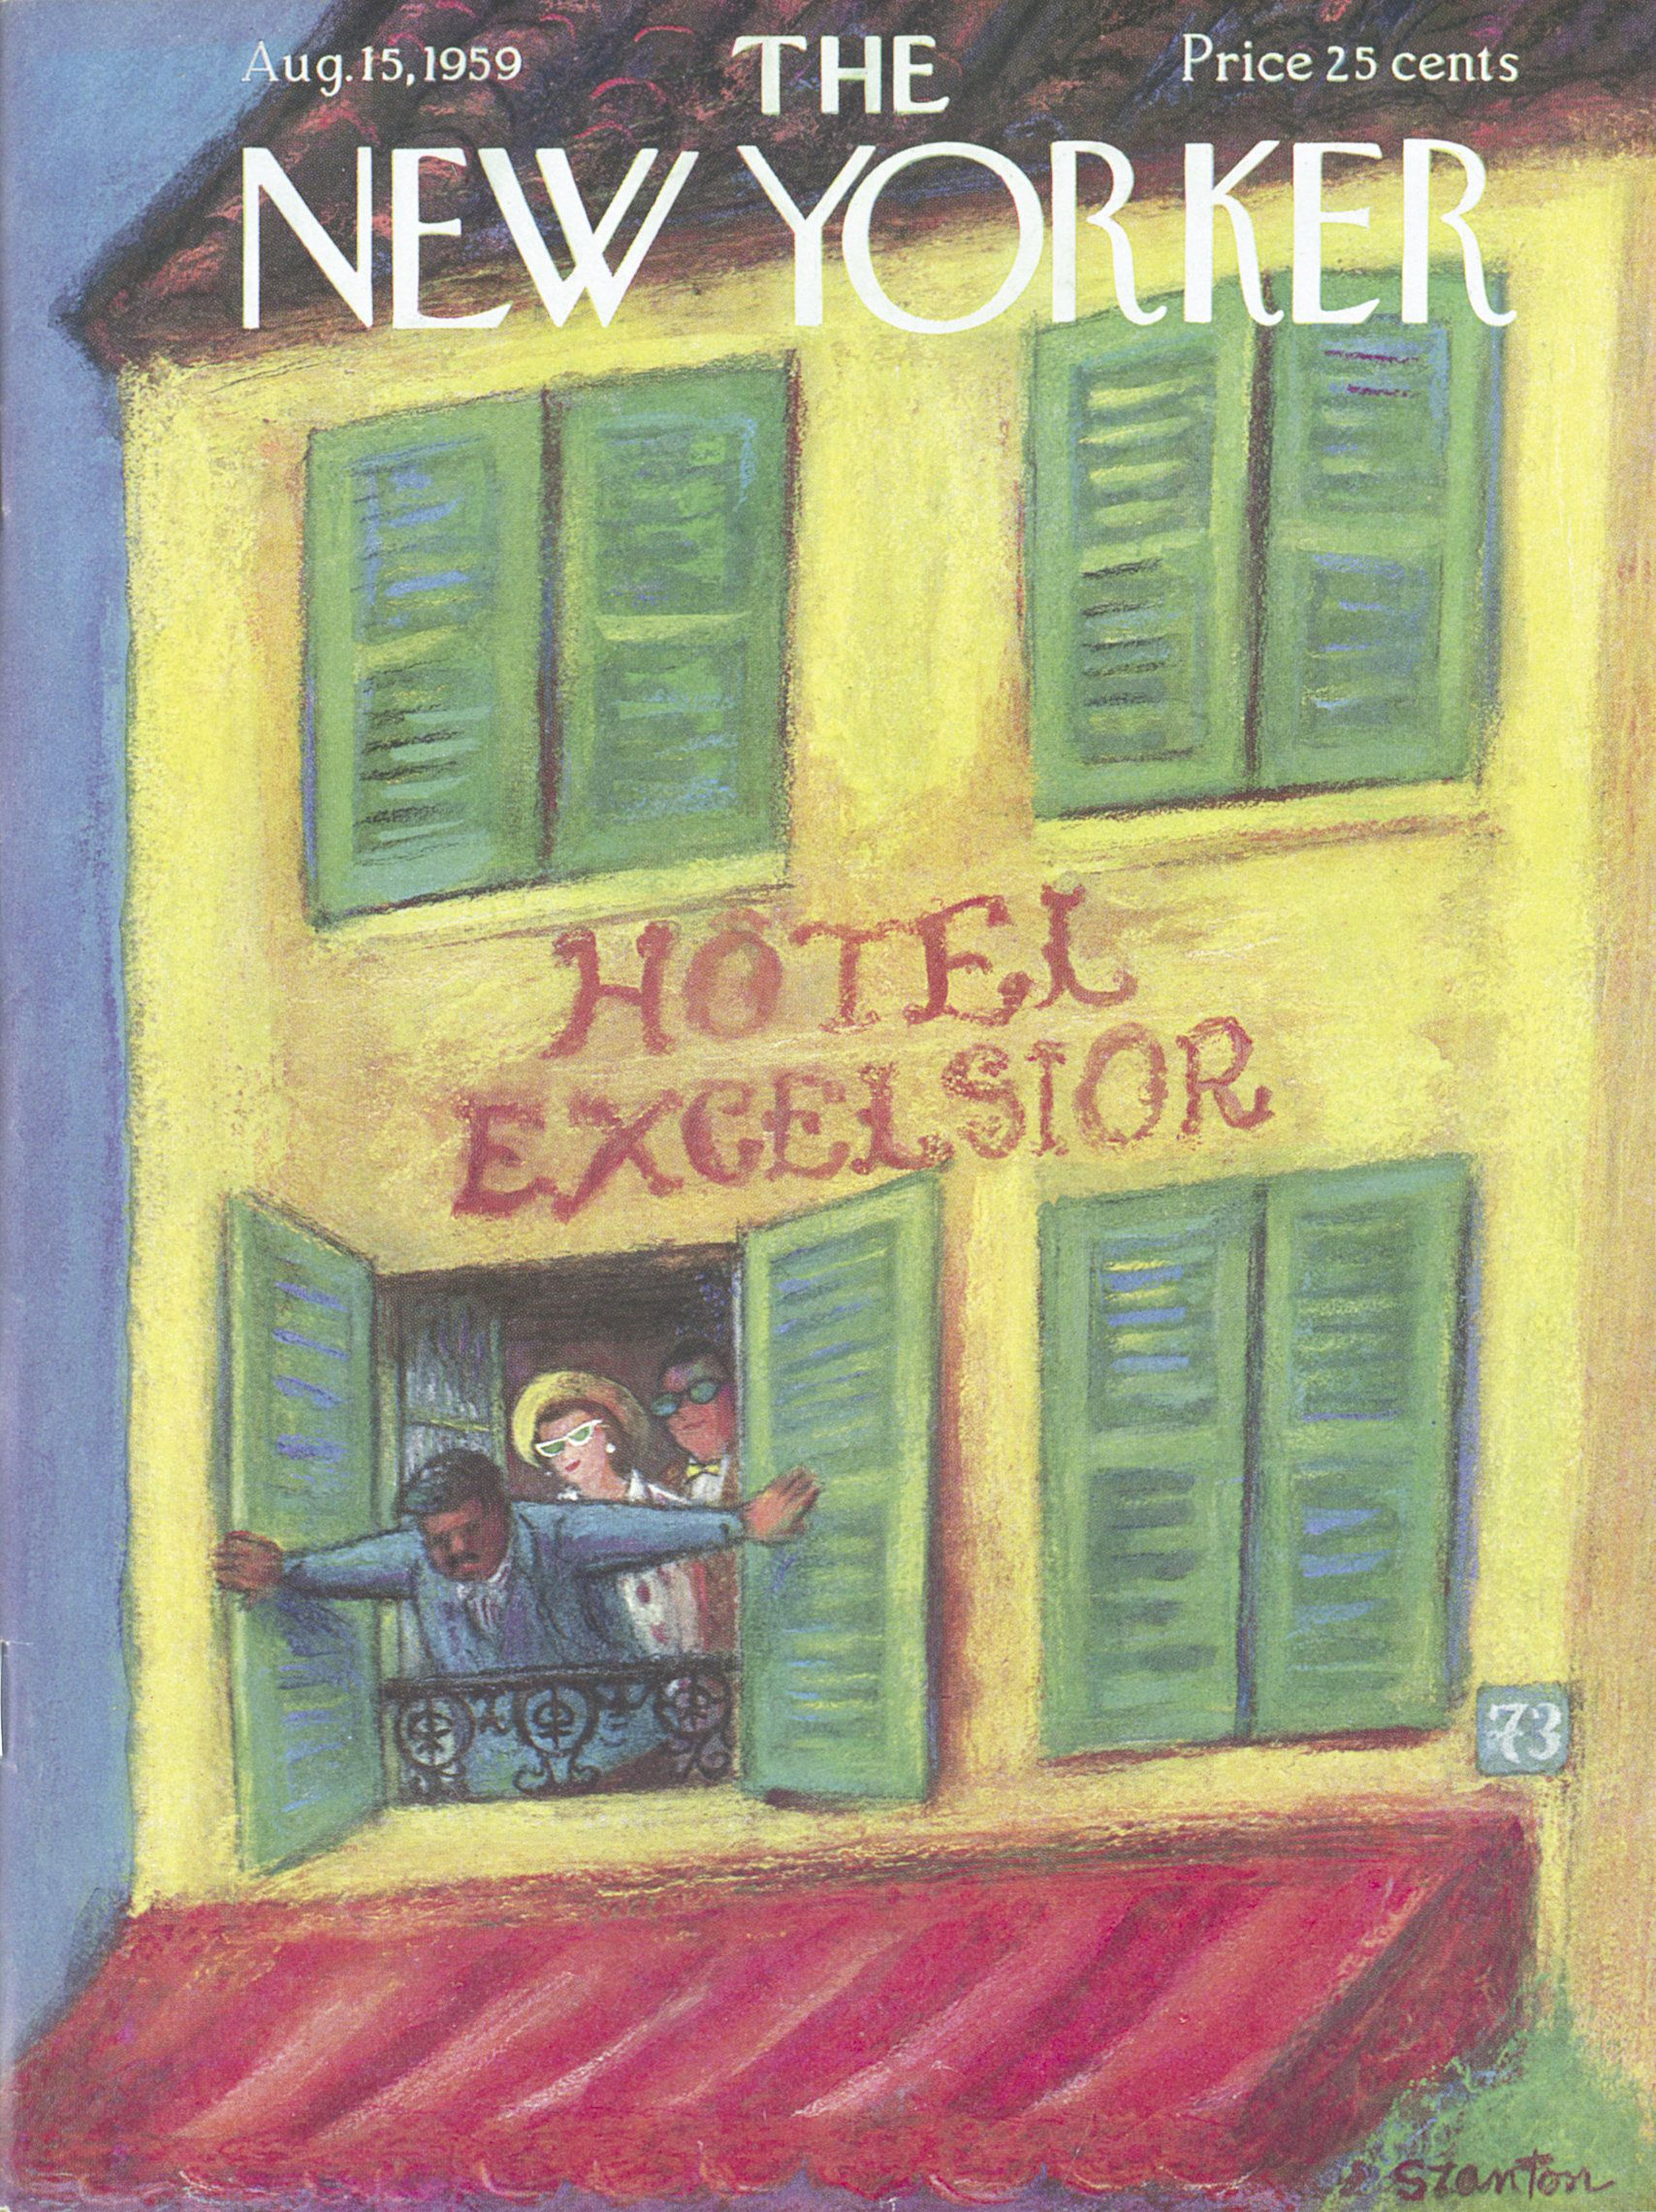 The New Yorker - Saturday, August 15, 1959 - Issue # 1800 - Vol. 35 - N° 26 - Cover by : Beatrice Szanton